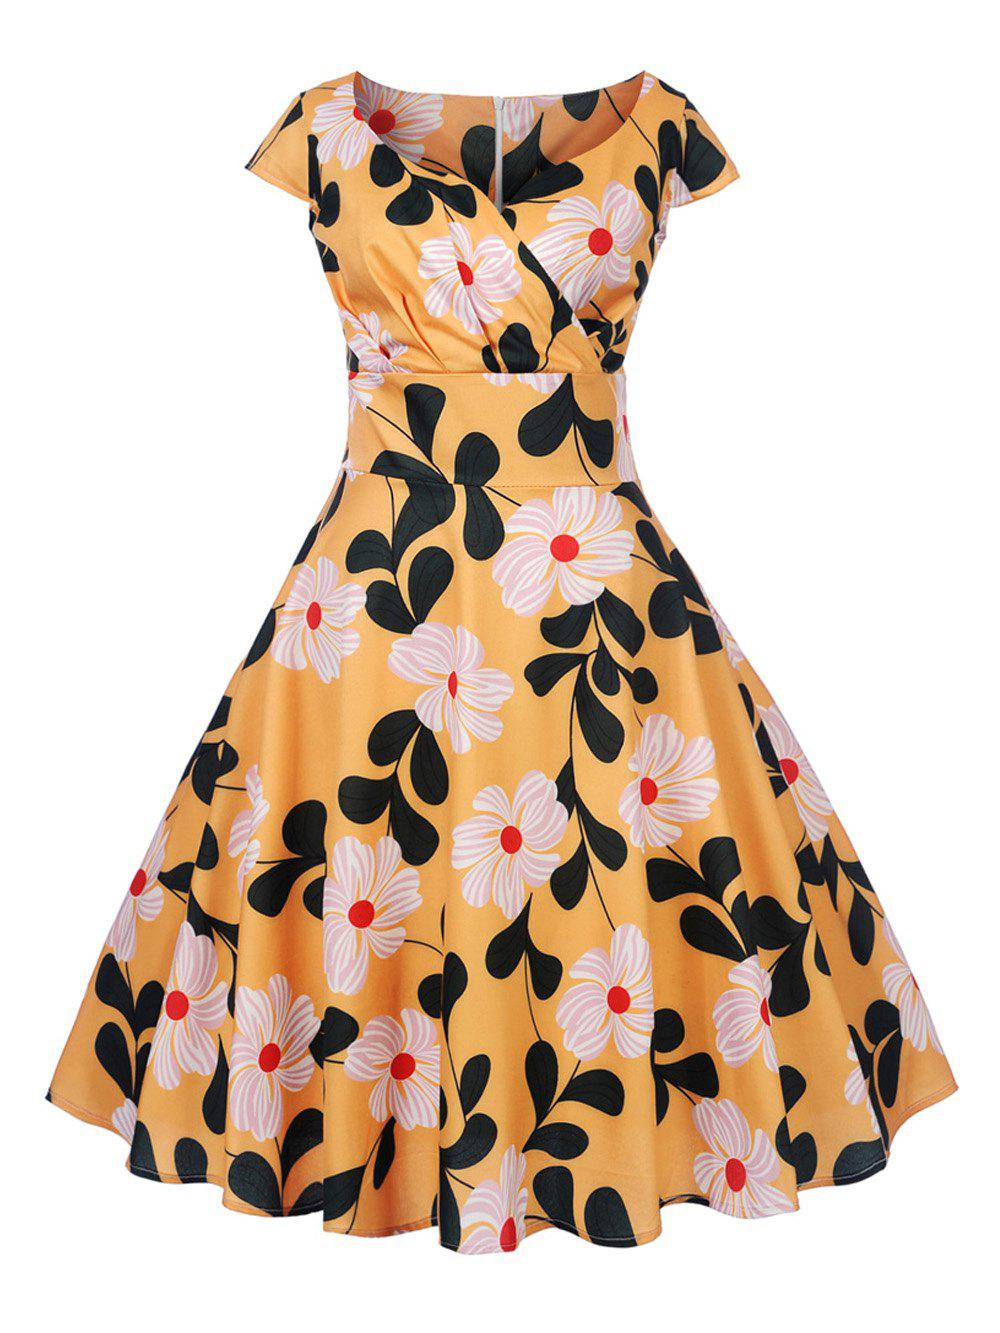 937aee65d0af Fashion New Women s Vintage 50s 60s Retro Rockabilly Pinup Housewife Party Swing  Dress